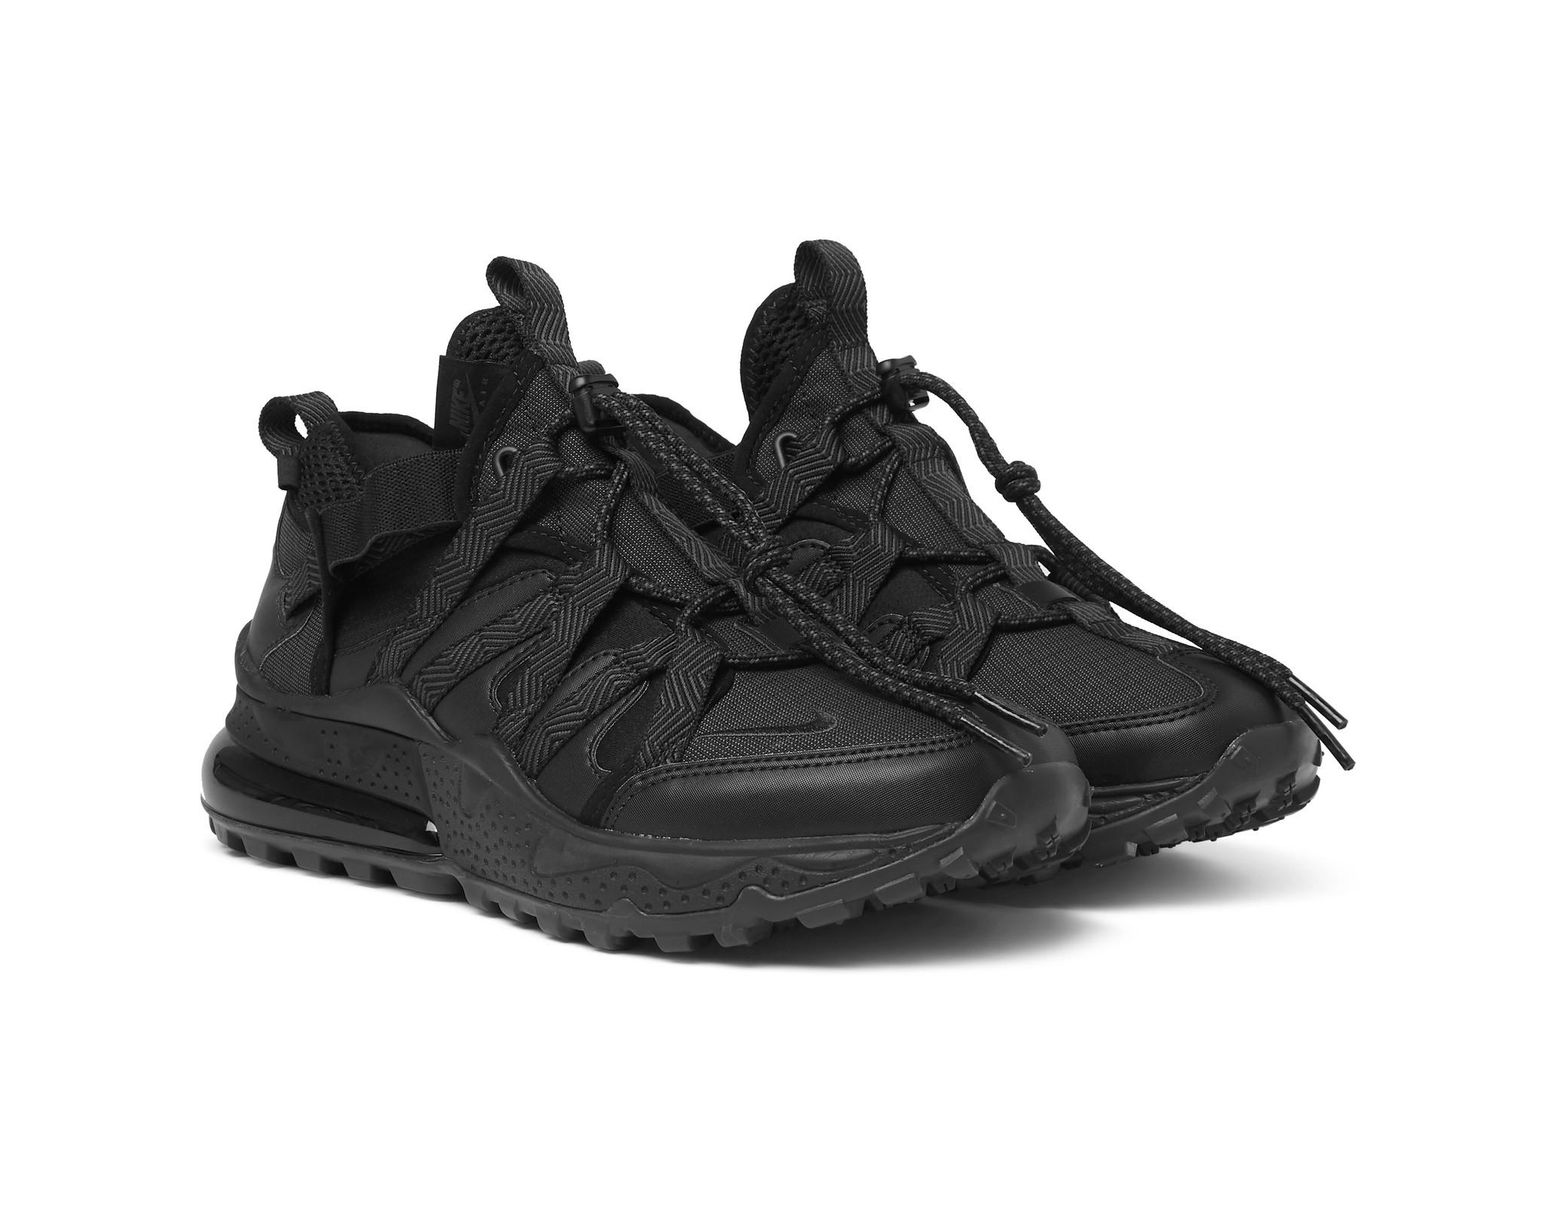 best website 985d1 acb68 Nike Air Max 270 Bowfin Ripstop, Mesh And Faux Leather Sneakers in Black  for Men - Lyst